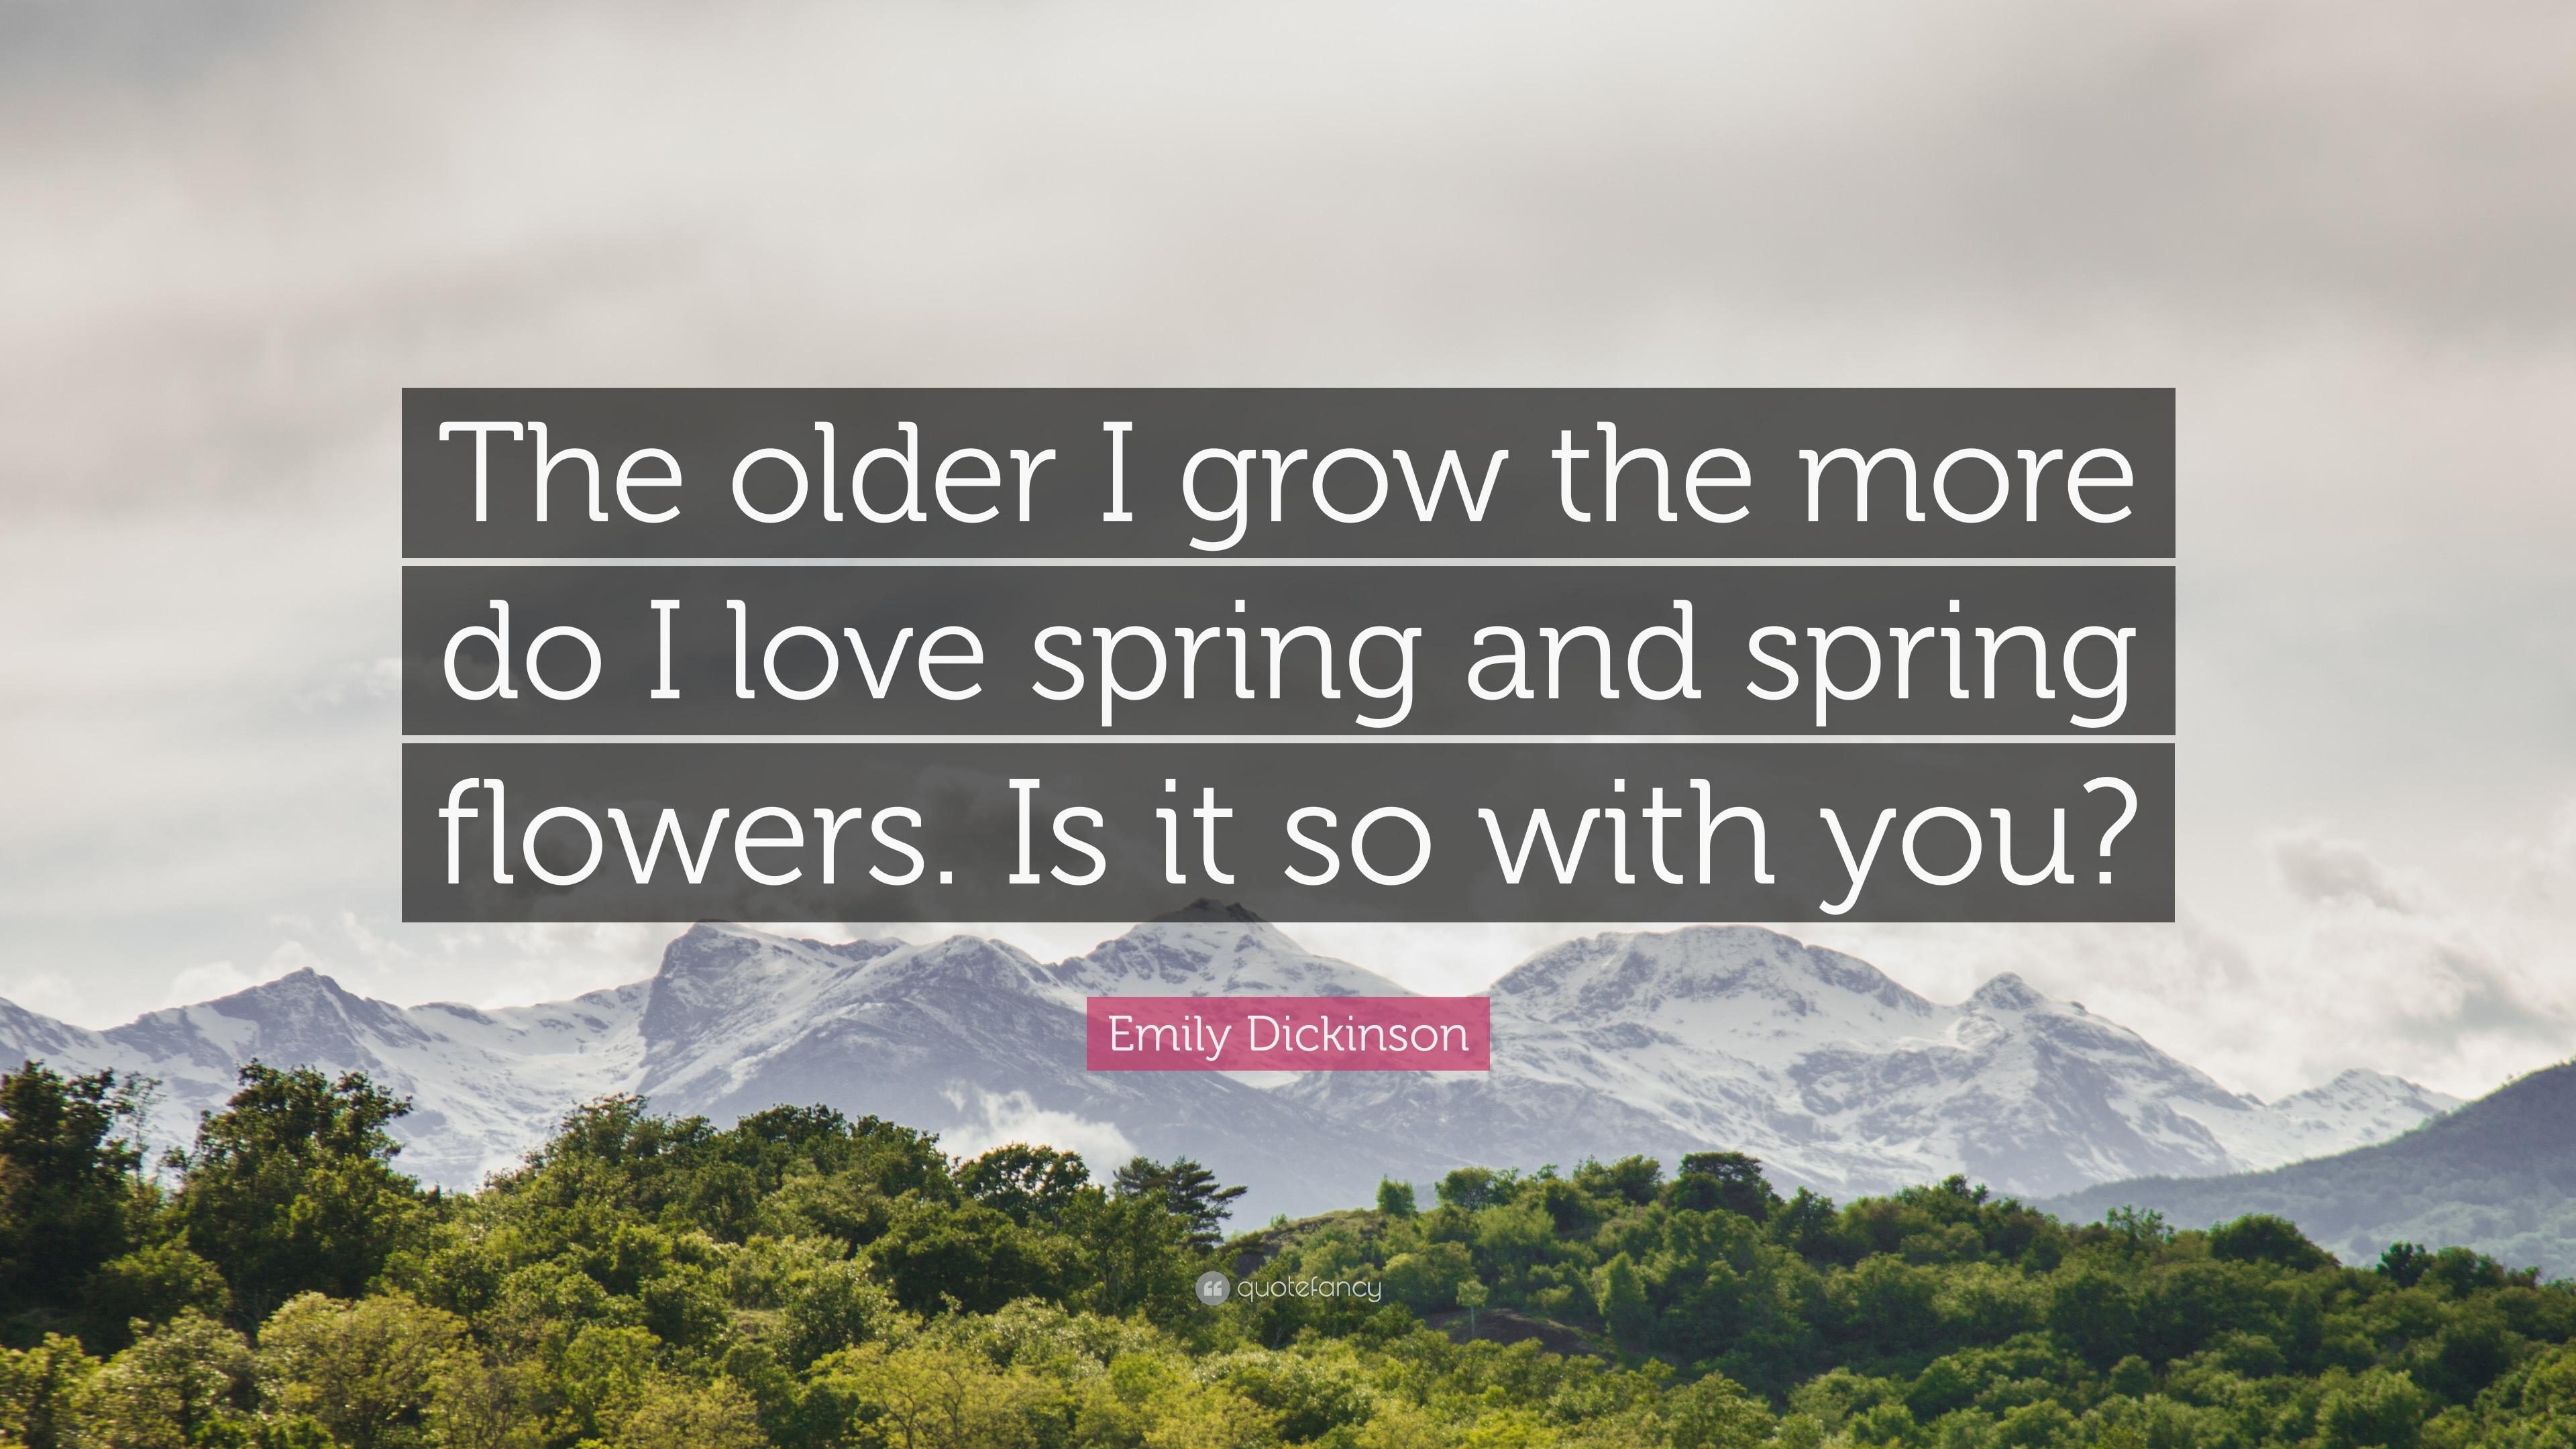 Emily Dickinson Quote: U201cThe Older I Grow The More Do I Love Spring And